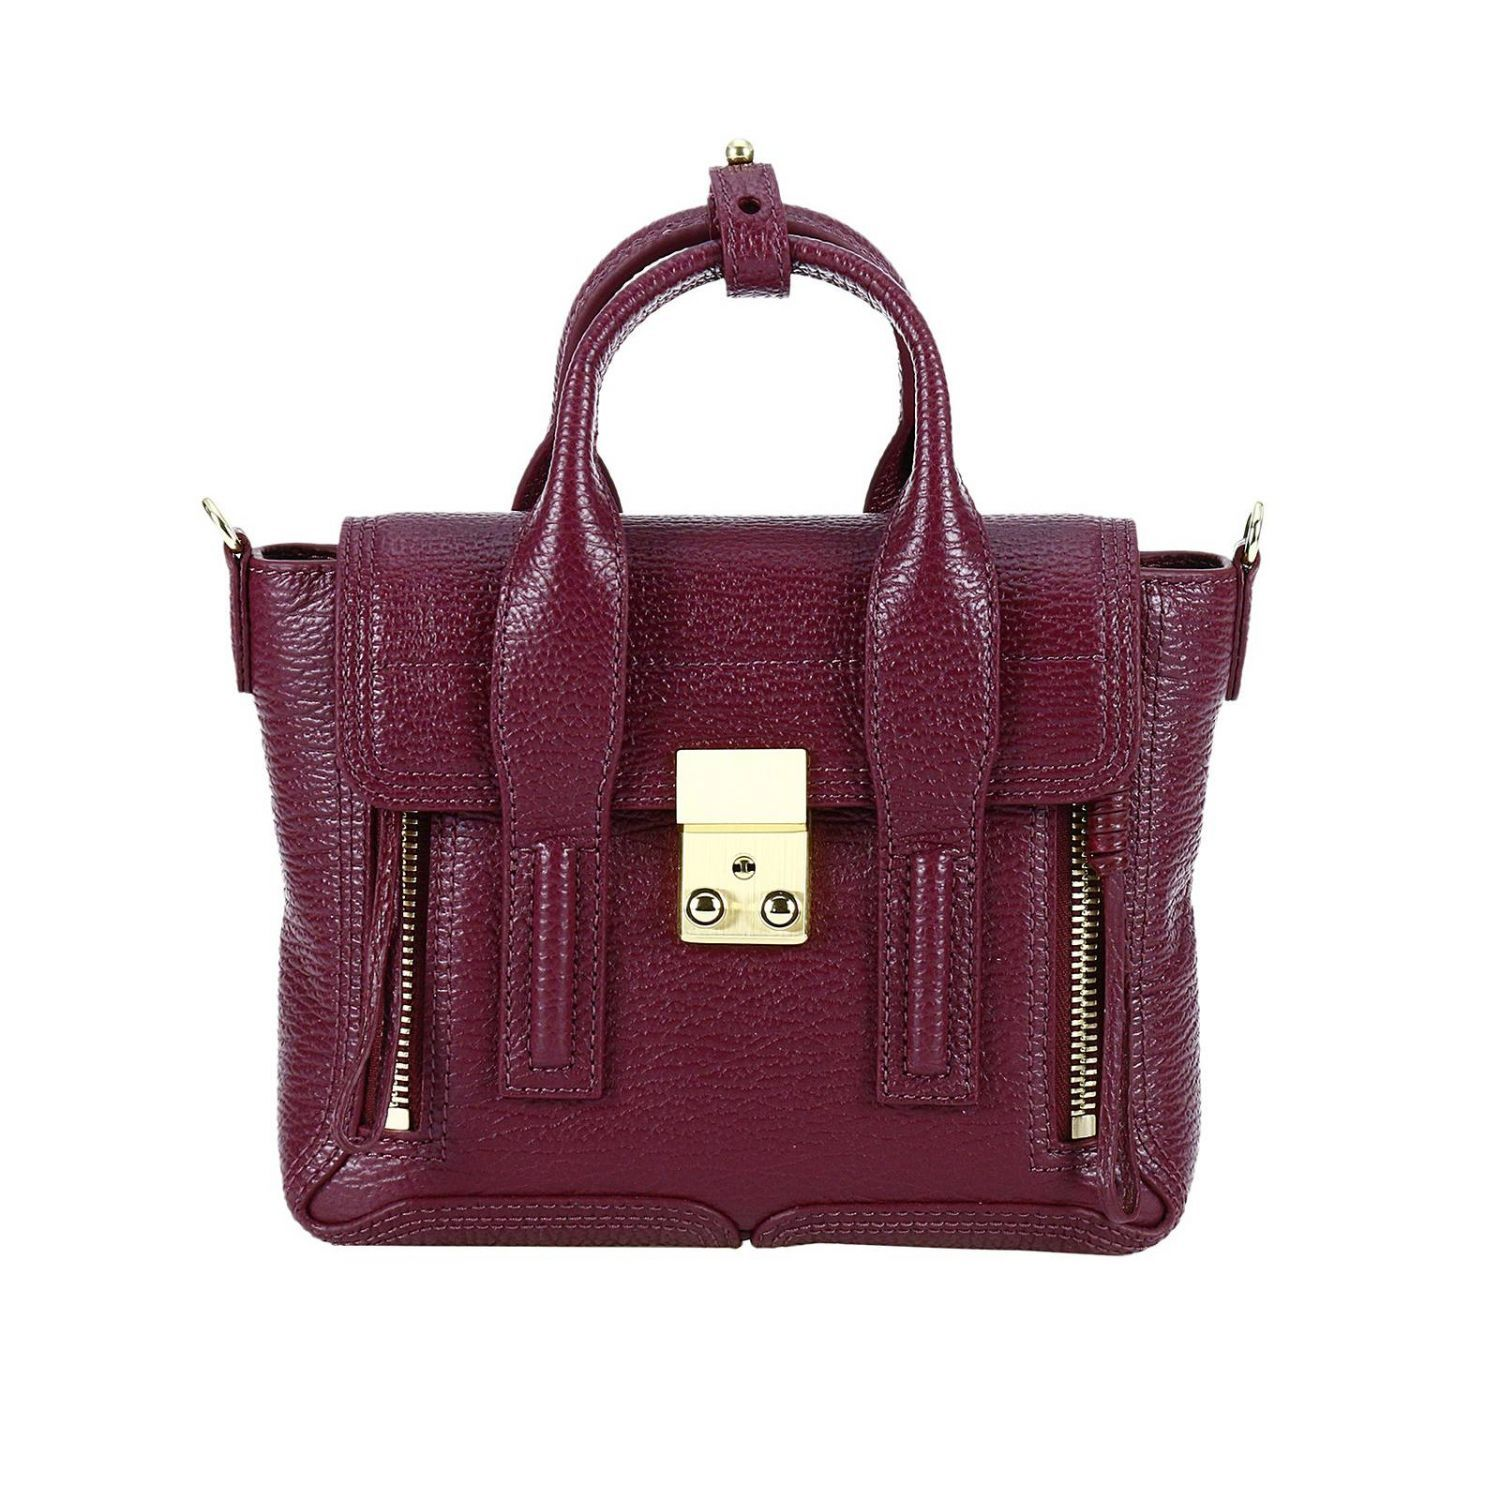 Mini Bag Shoulder Bag Women 3.1 Phillip Lim